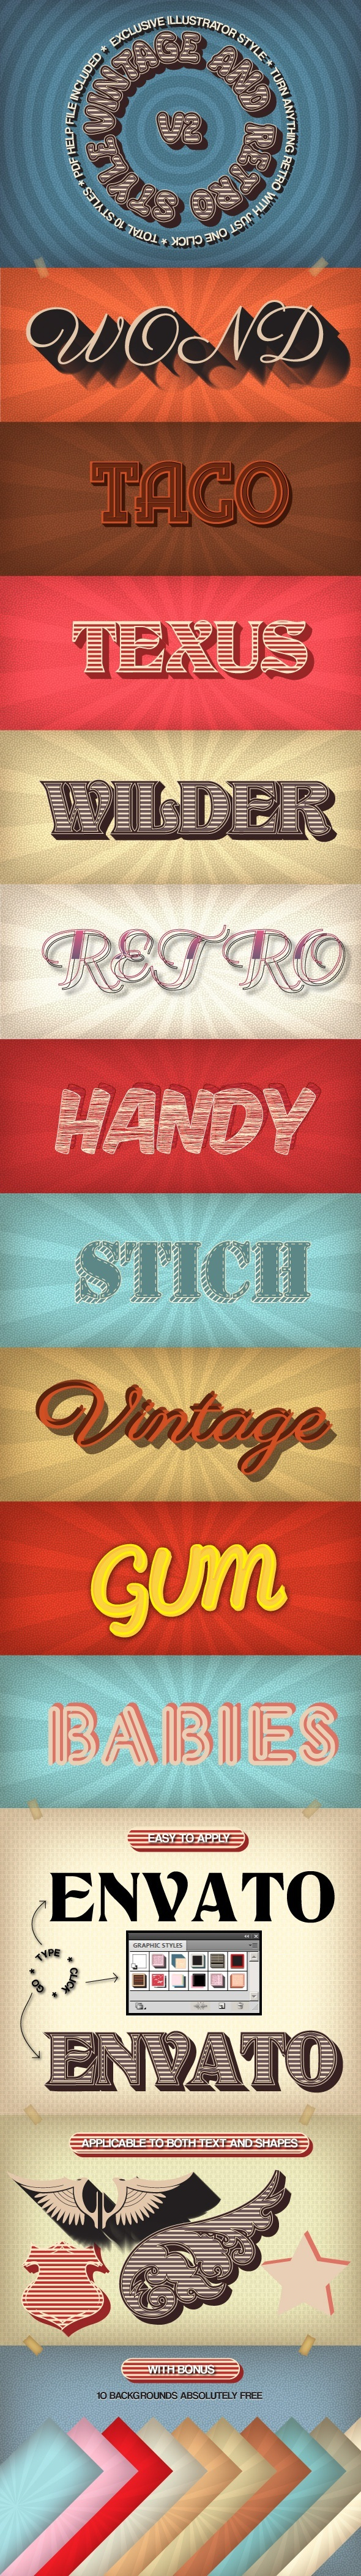 Vintage and Retro Styles V2 - Styles Illustrator